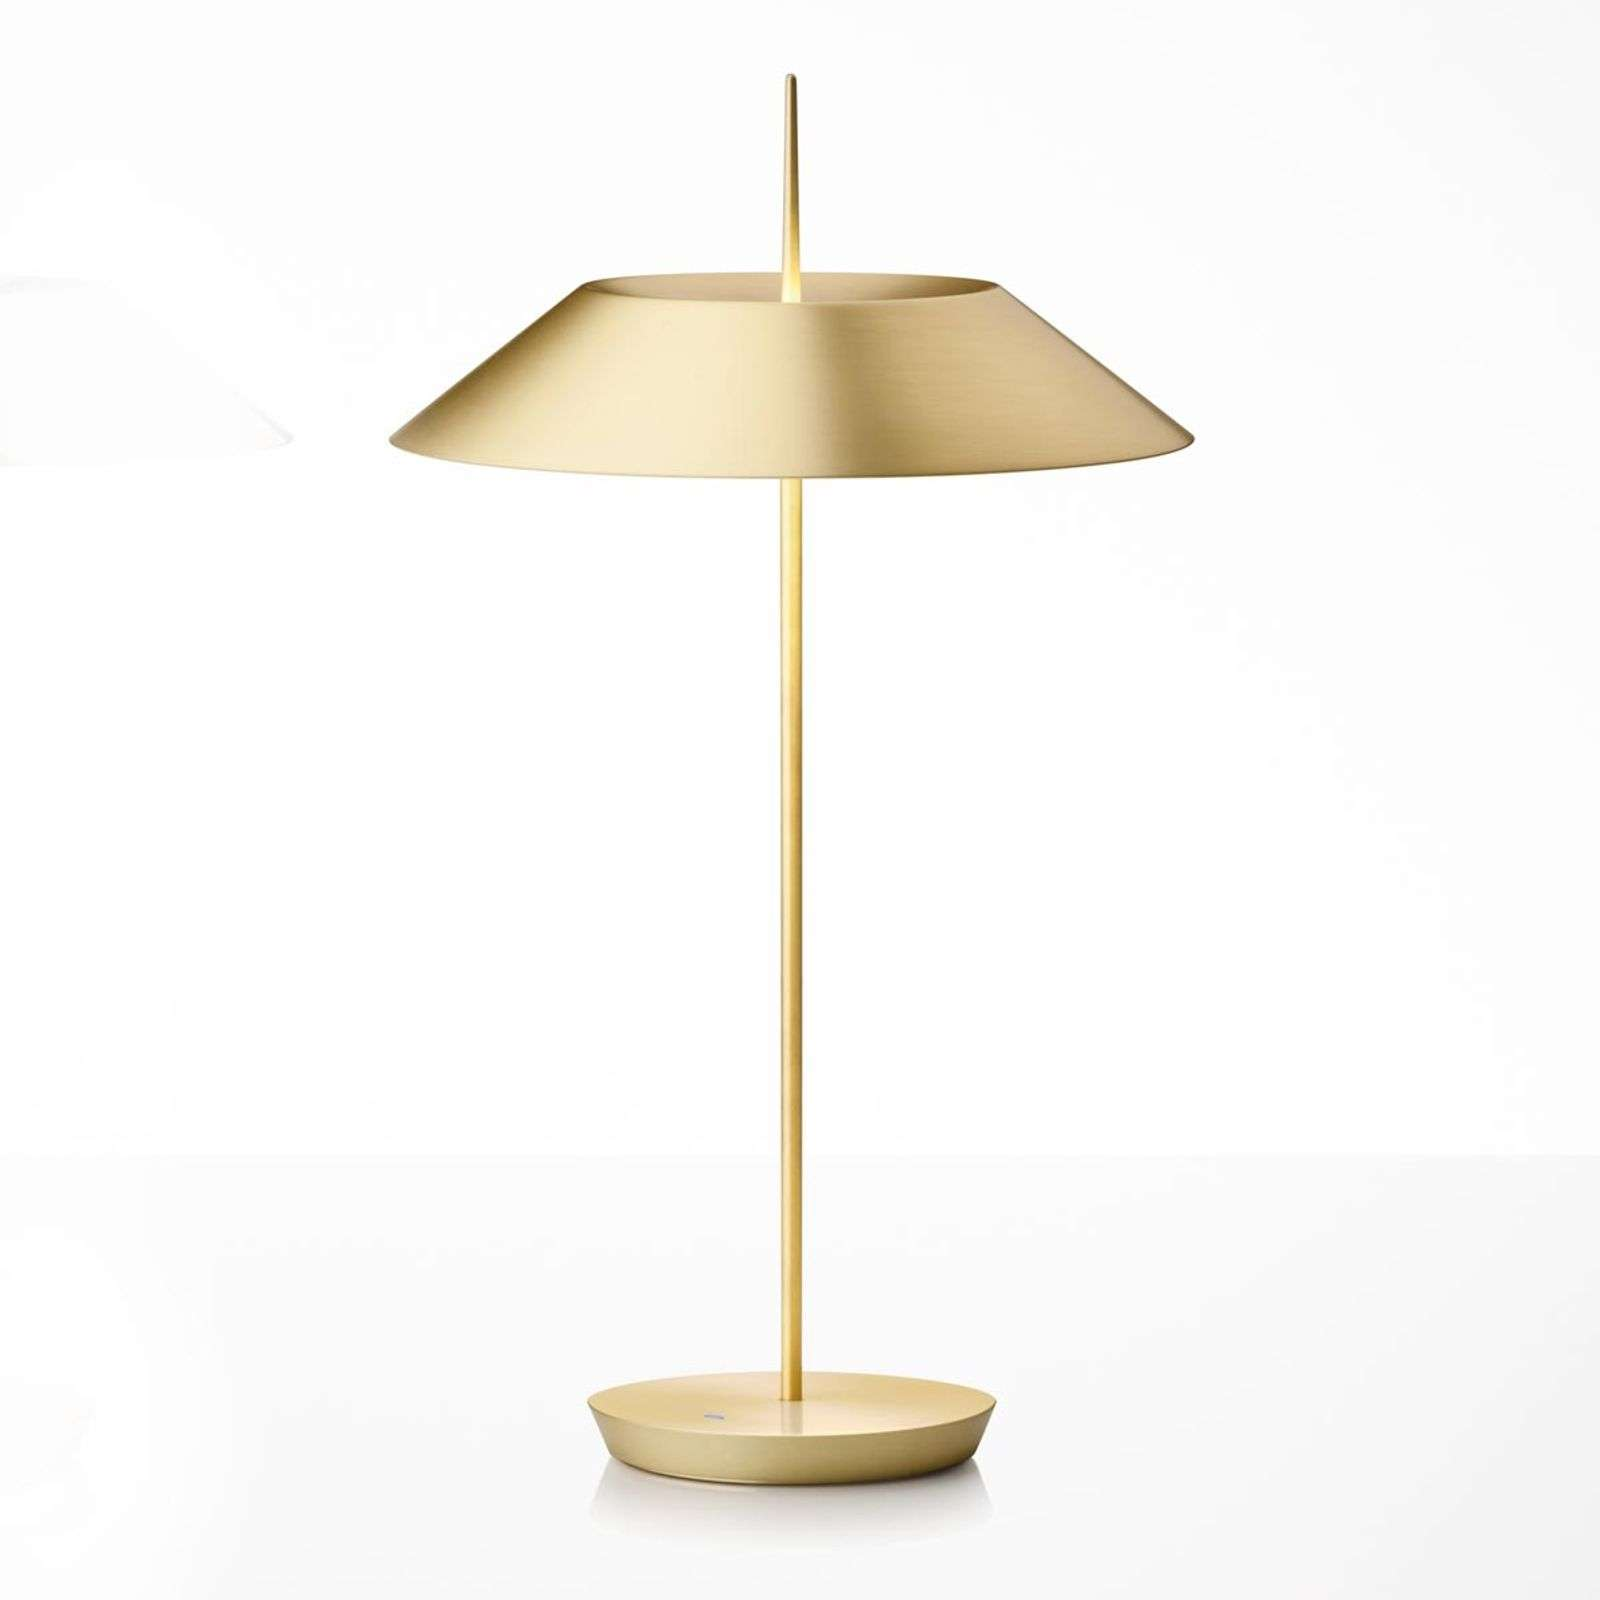 Lampe design à poser LED Mayfair, dimmable